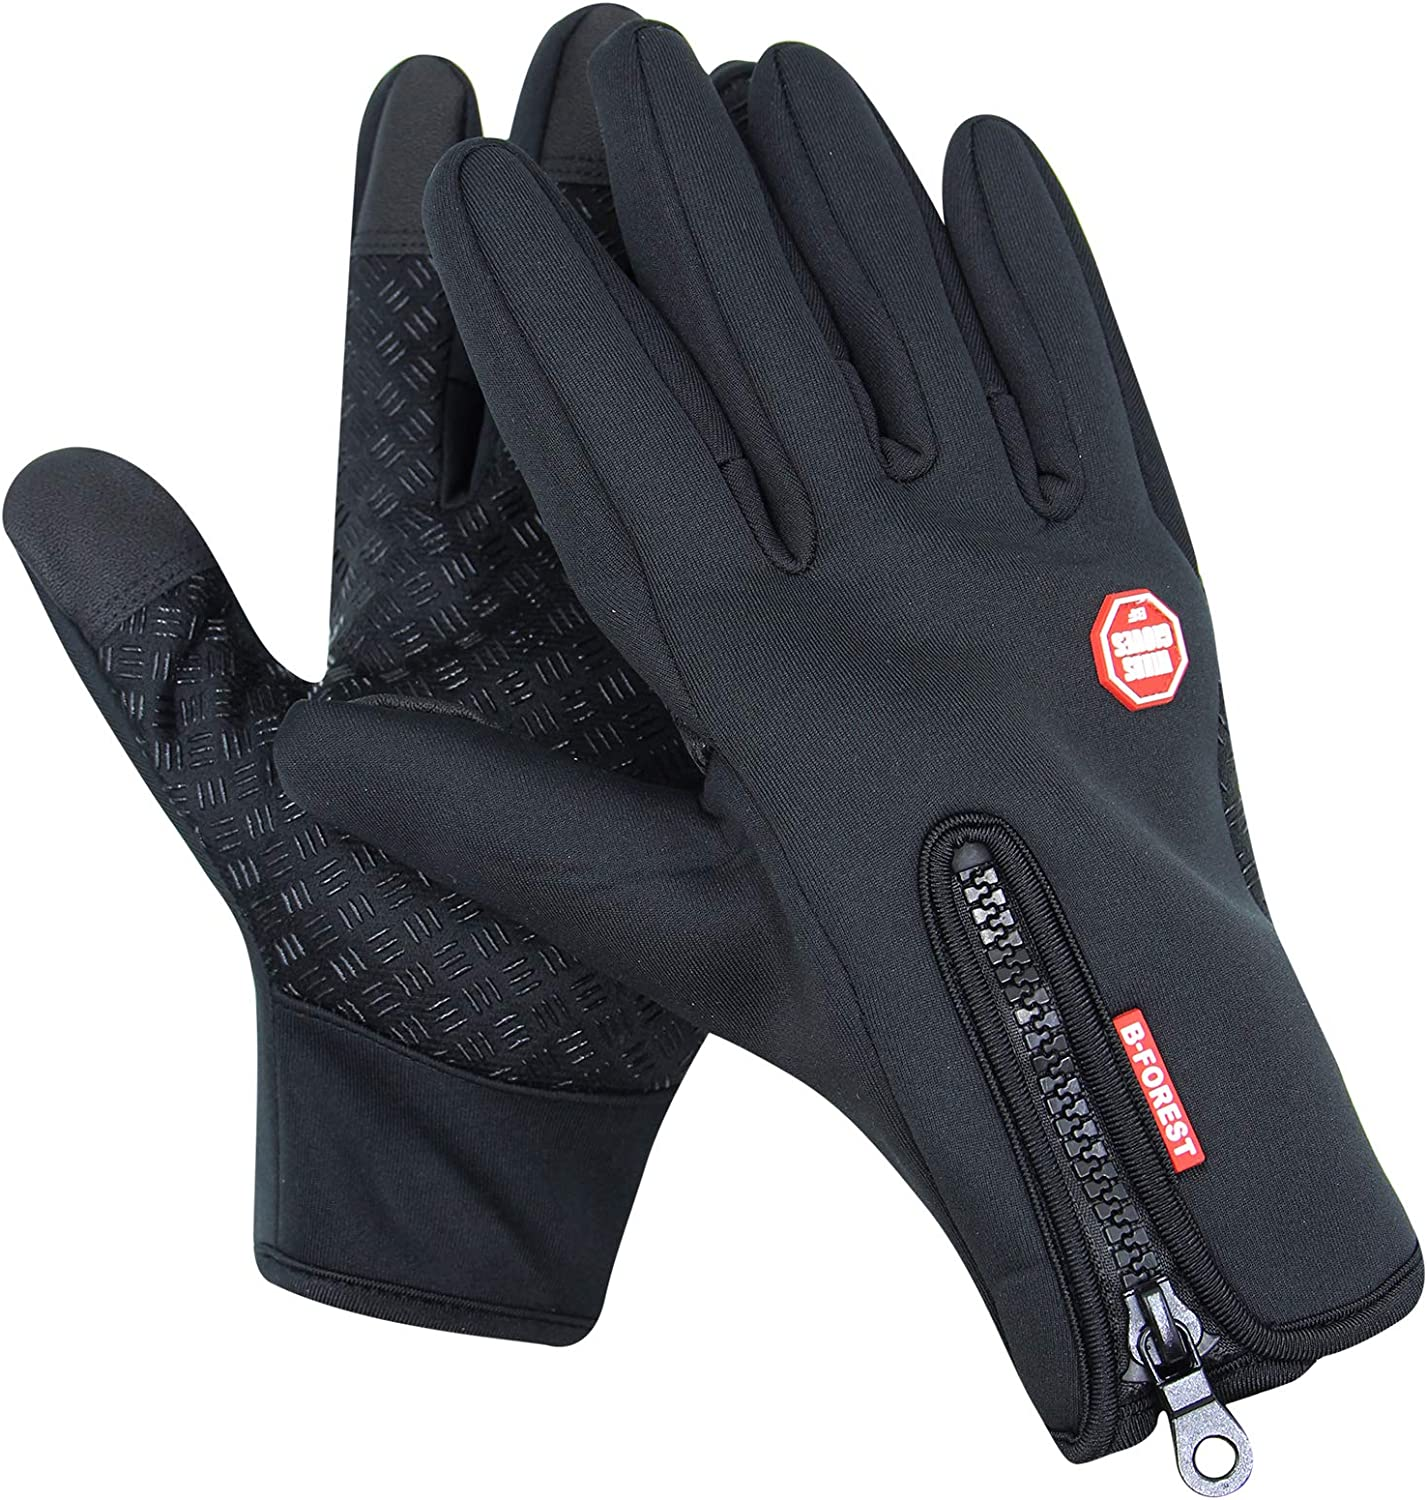 Mens Womens Winter Waterproof Gloves Non-Slip Touch Screen Gloves for Skiing Cycling Running Driving